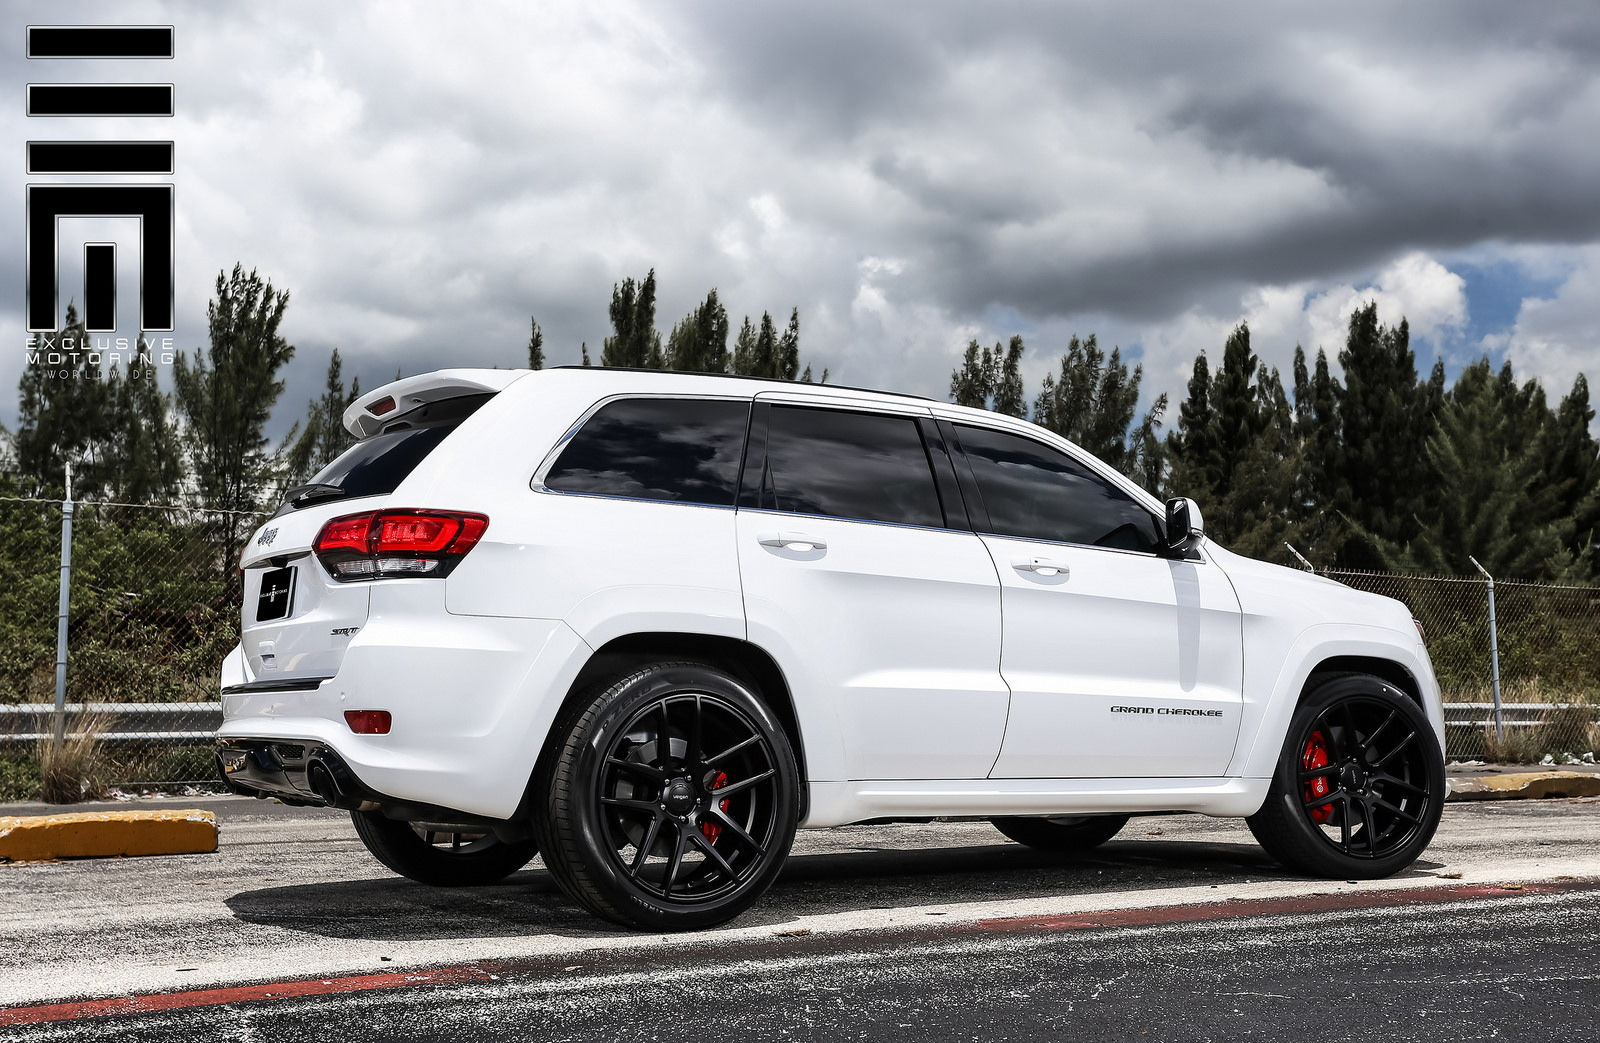 Jeep Cherokee Srt8 Velgen Wheels Vmb5 6speedonline Porsche Forum And Luxury Car Resource